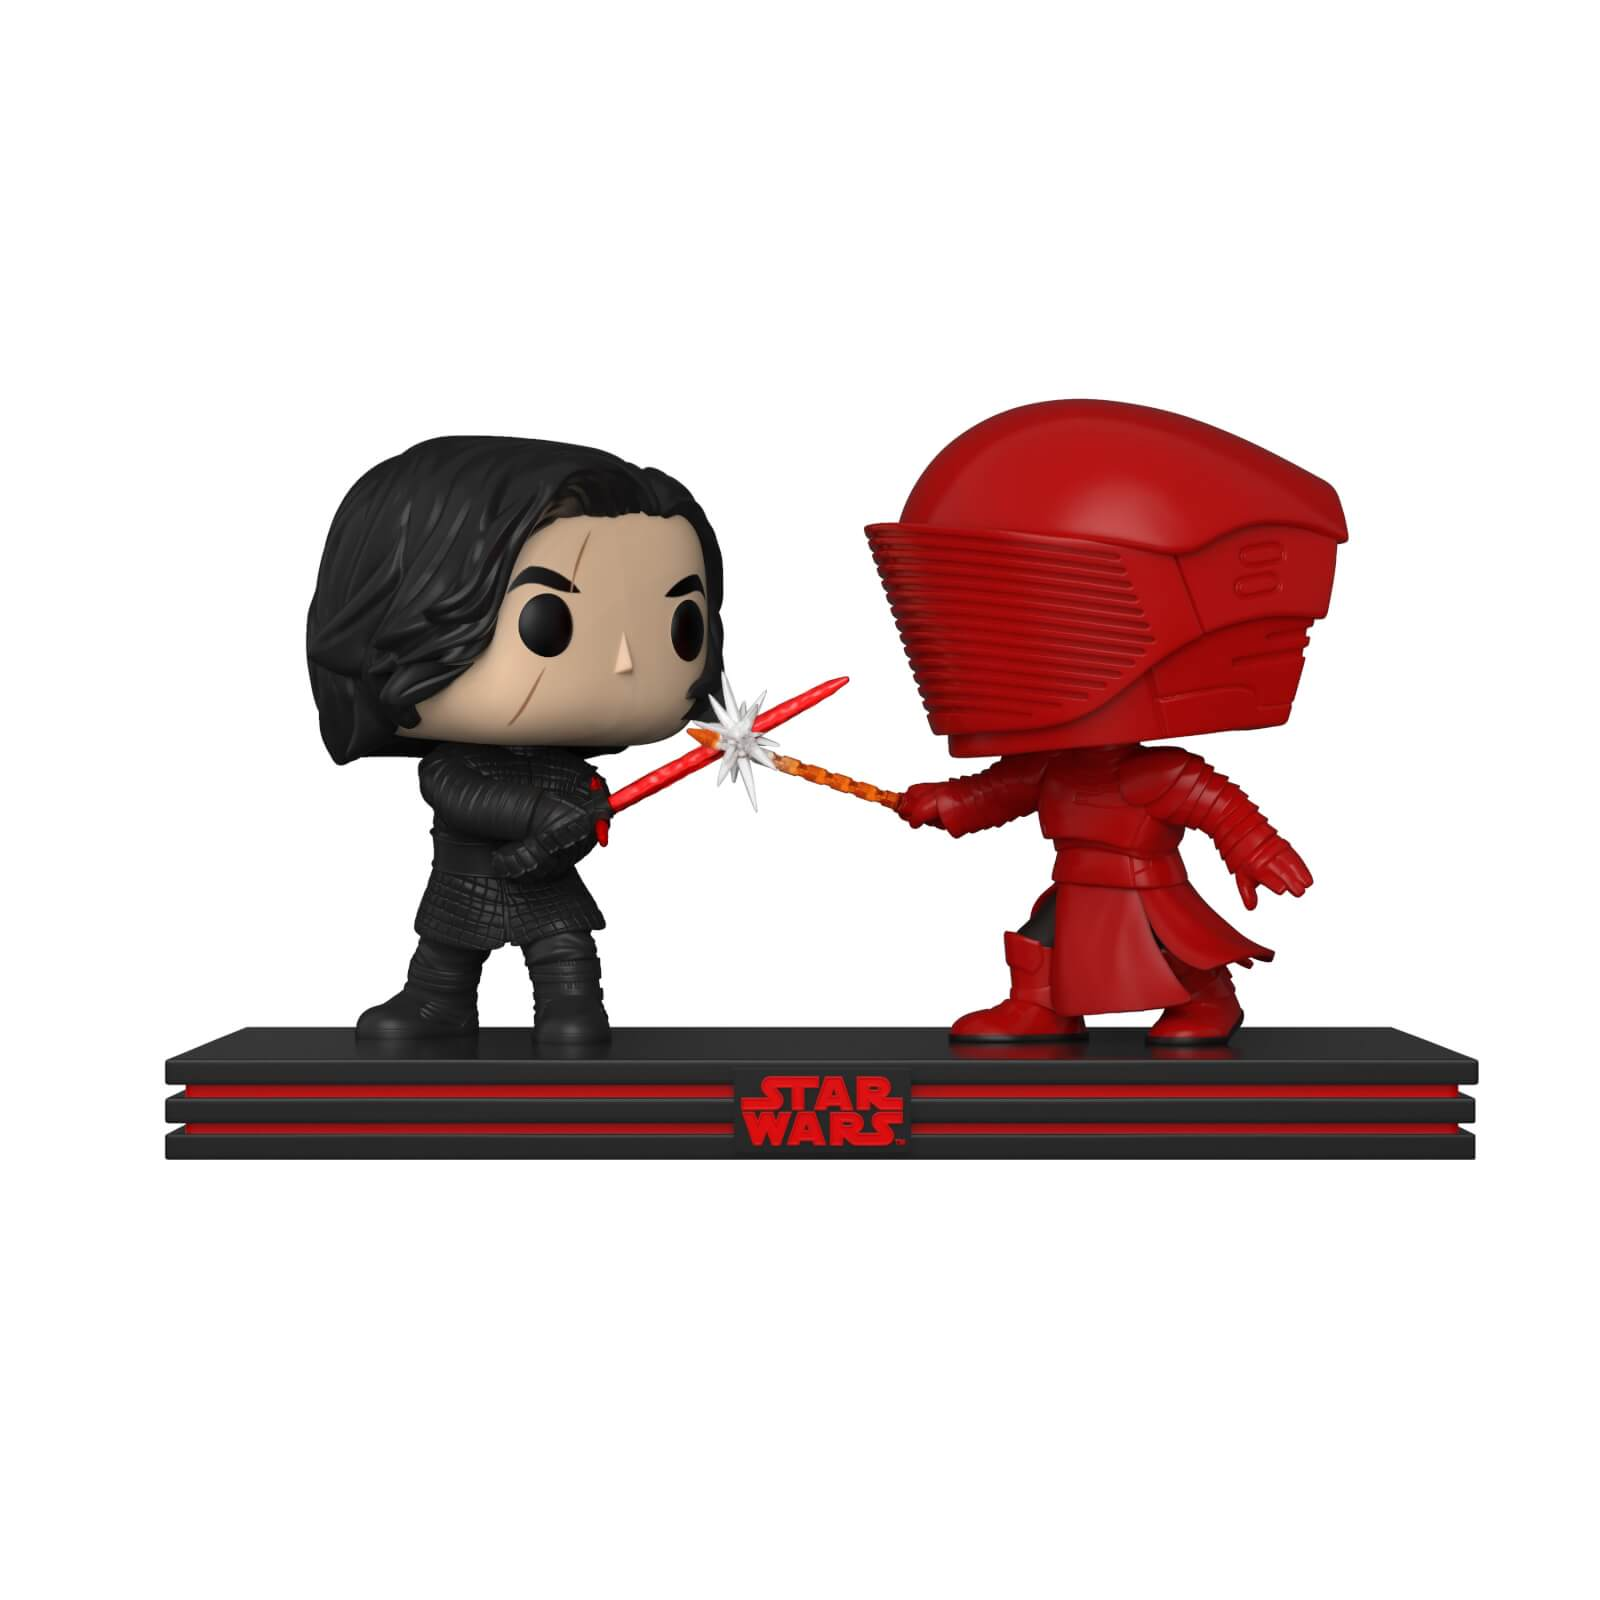 Star Wars The Last Jedi Kylo Ren & Praetorian Guard Pop! Movie Moment